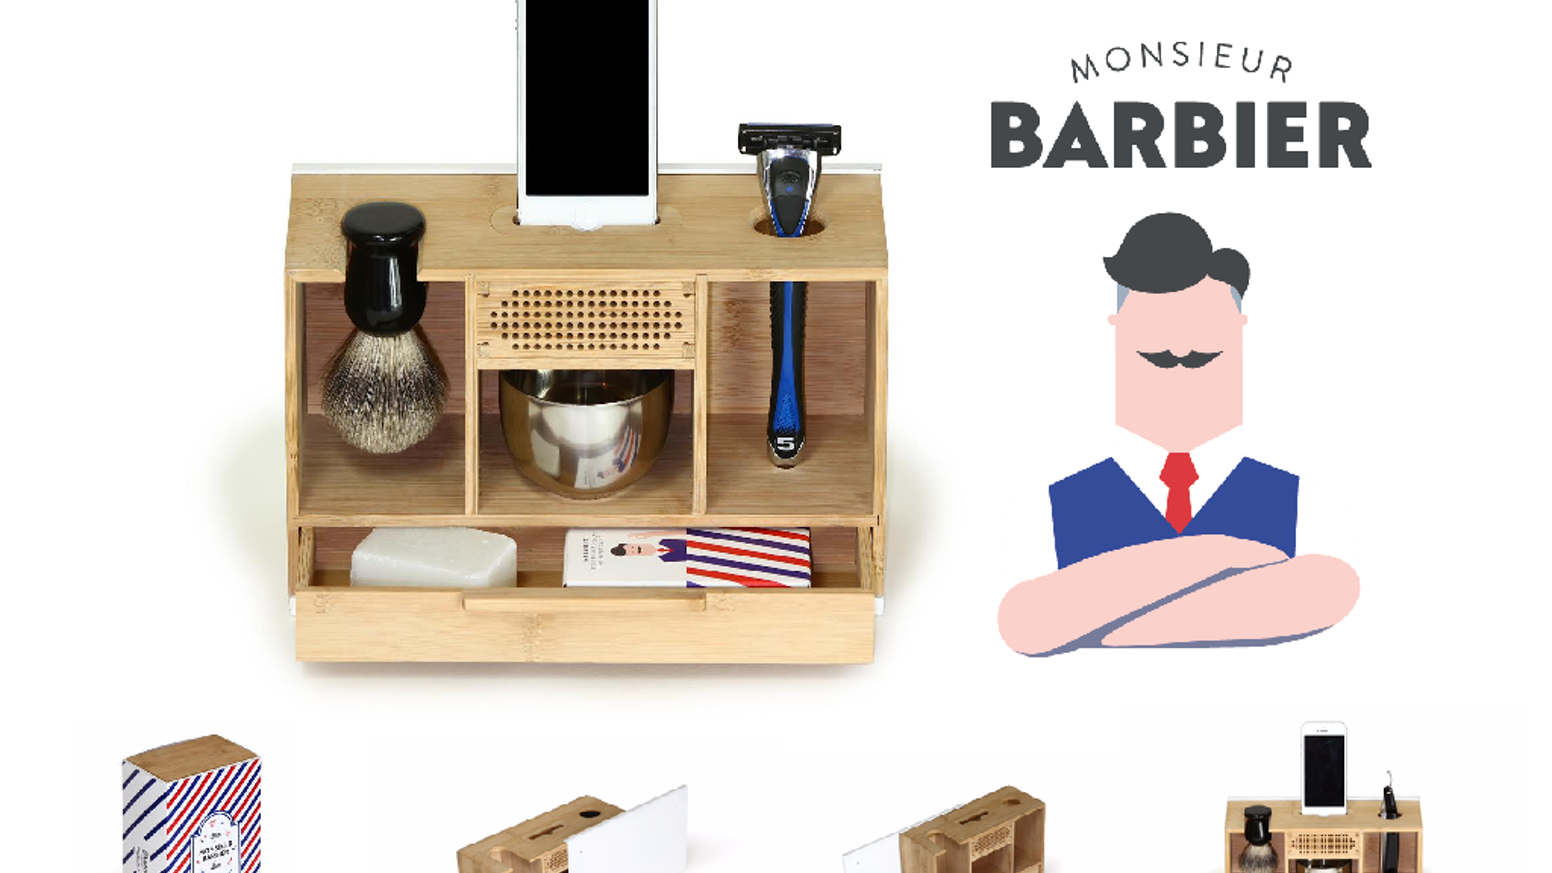 Made in Paris, beautifully designed. Our shaving stand redefines your morning routine, with music, style, and a French barber touch!